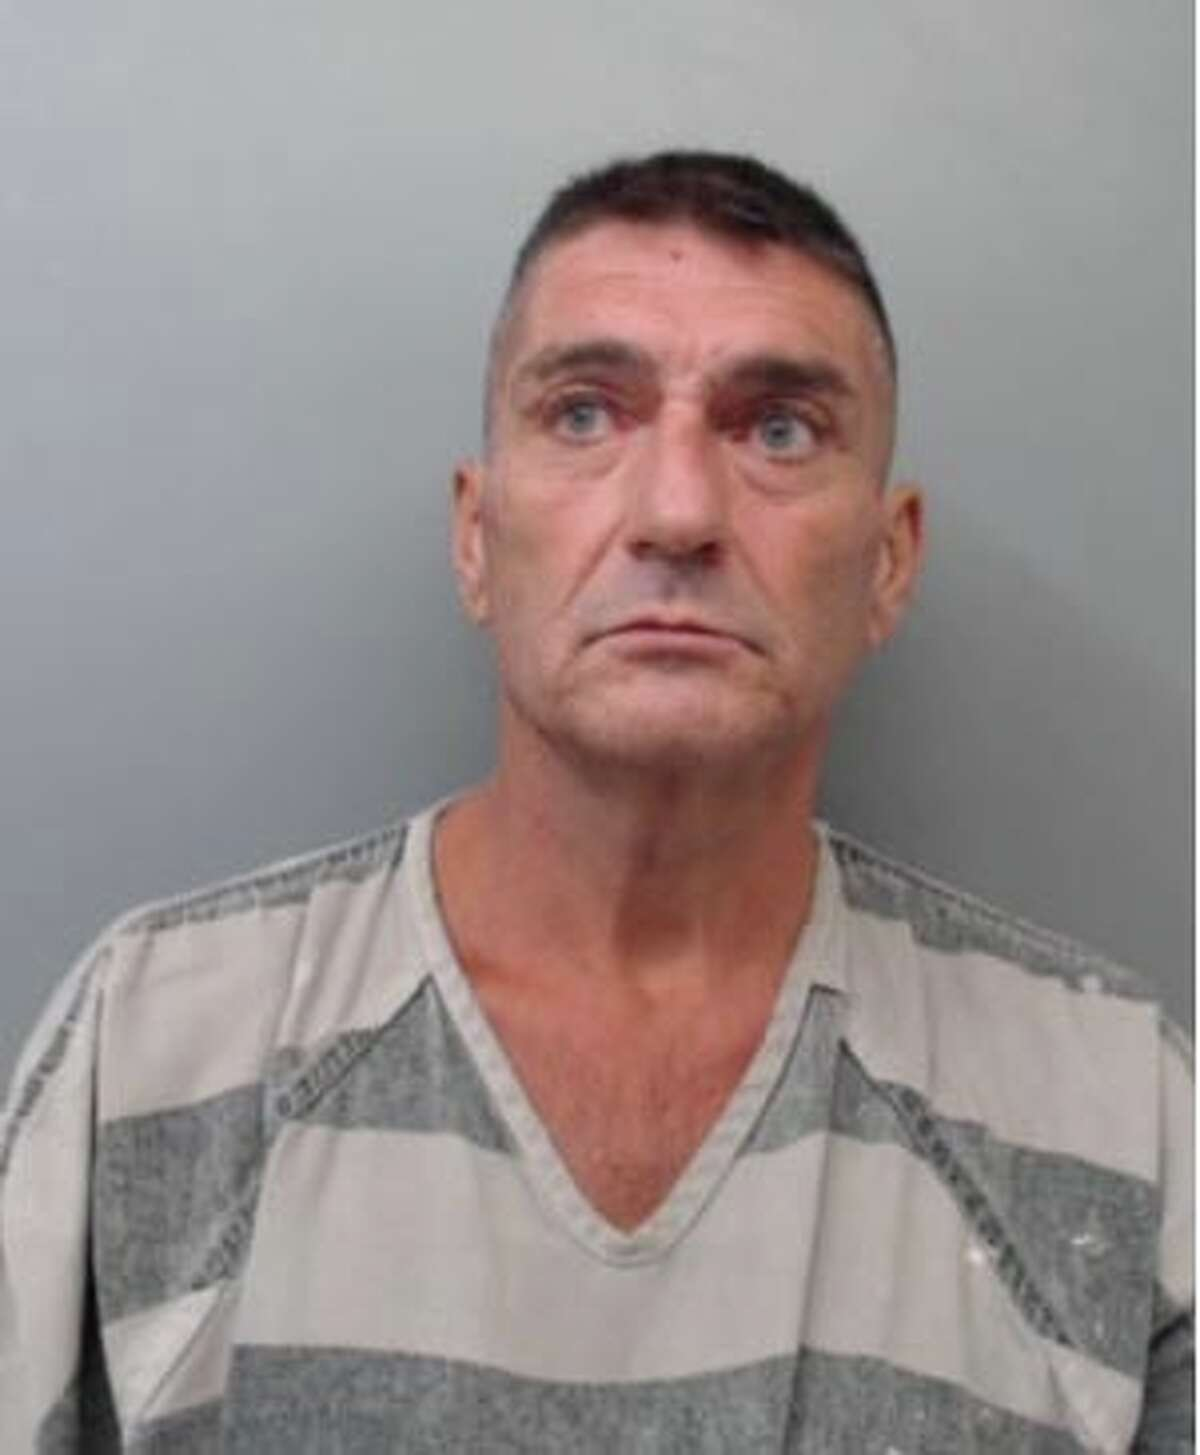 Randell Walden, 54, was charged with criminal trespass.